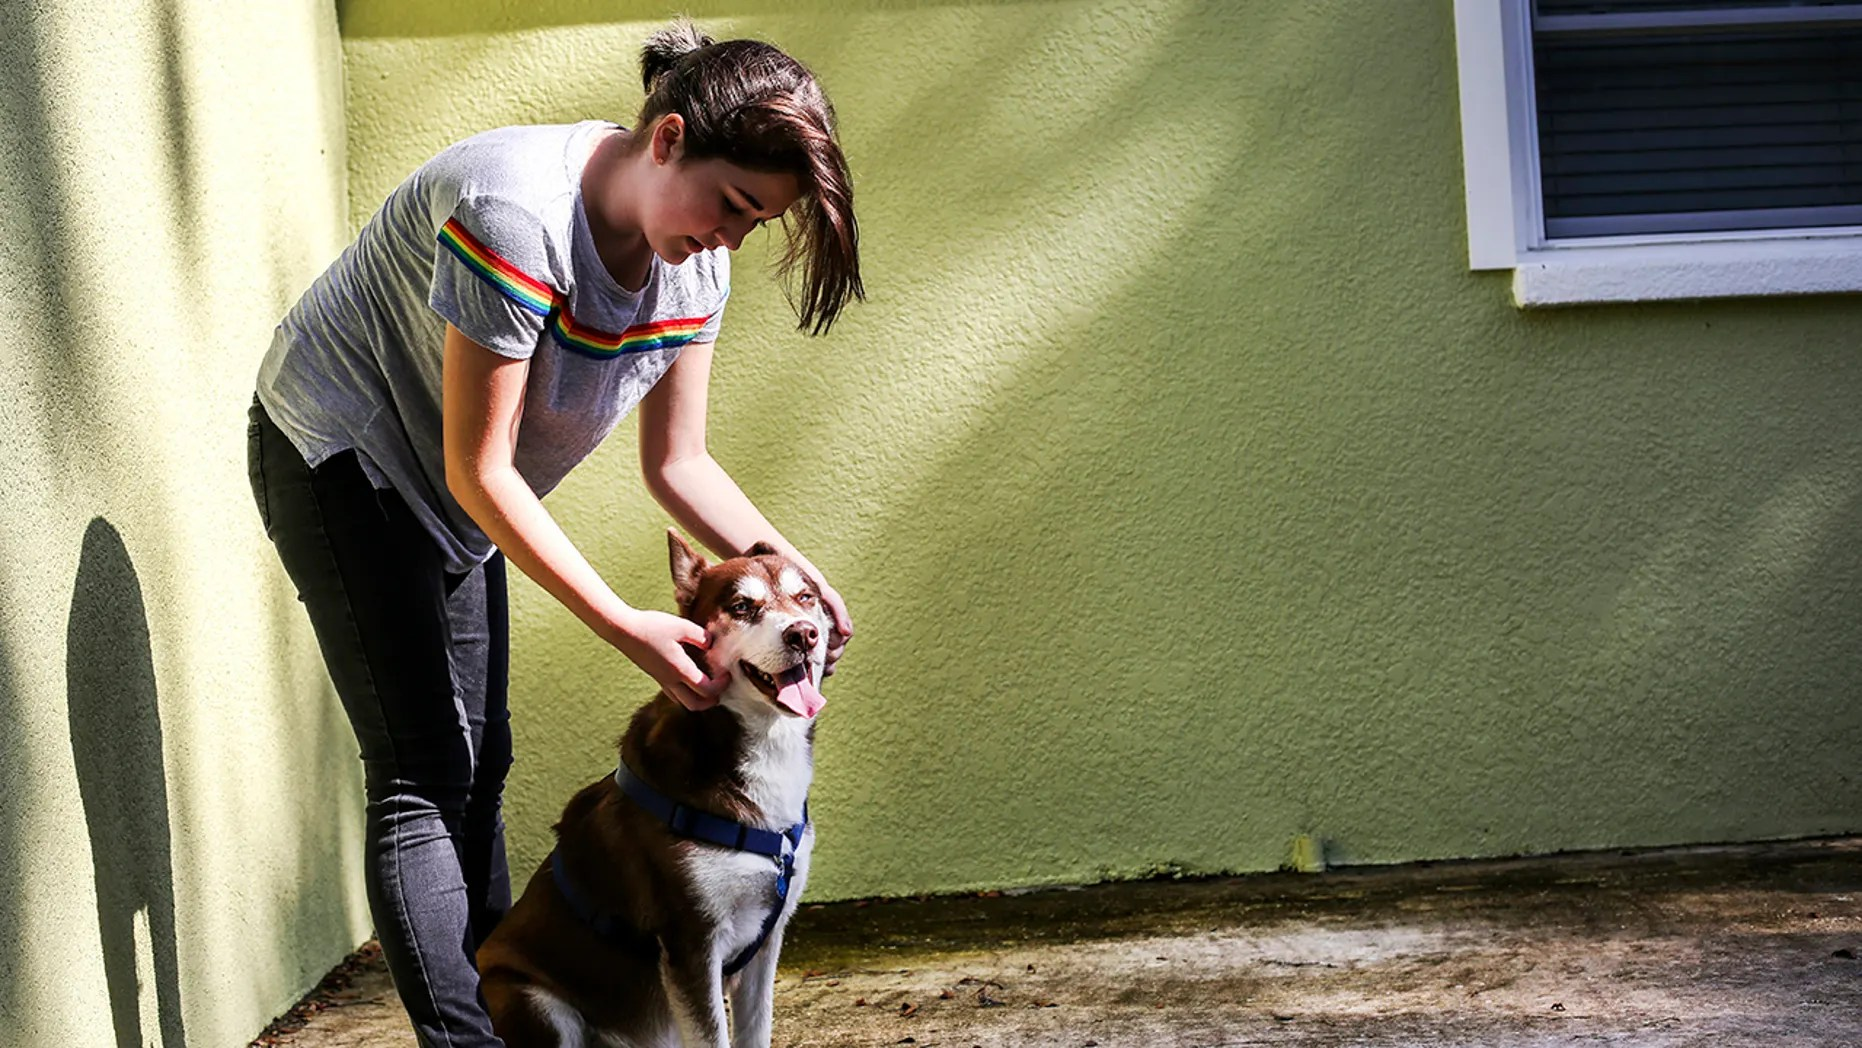 Rose Verrill, 13, rubs the head of a Husky named Sinatra at her home in Seffner, Fla. (Bronte Wittpenn/Tampa Bay Times via AP)